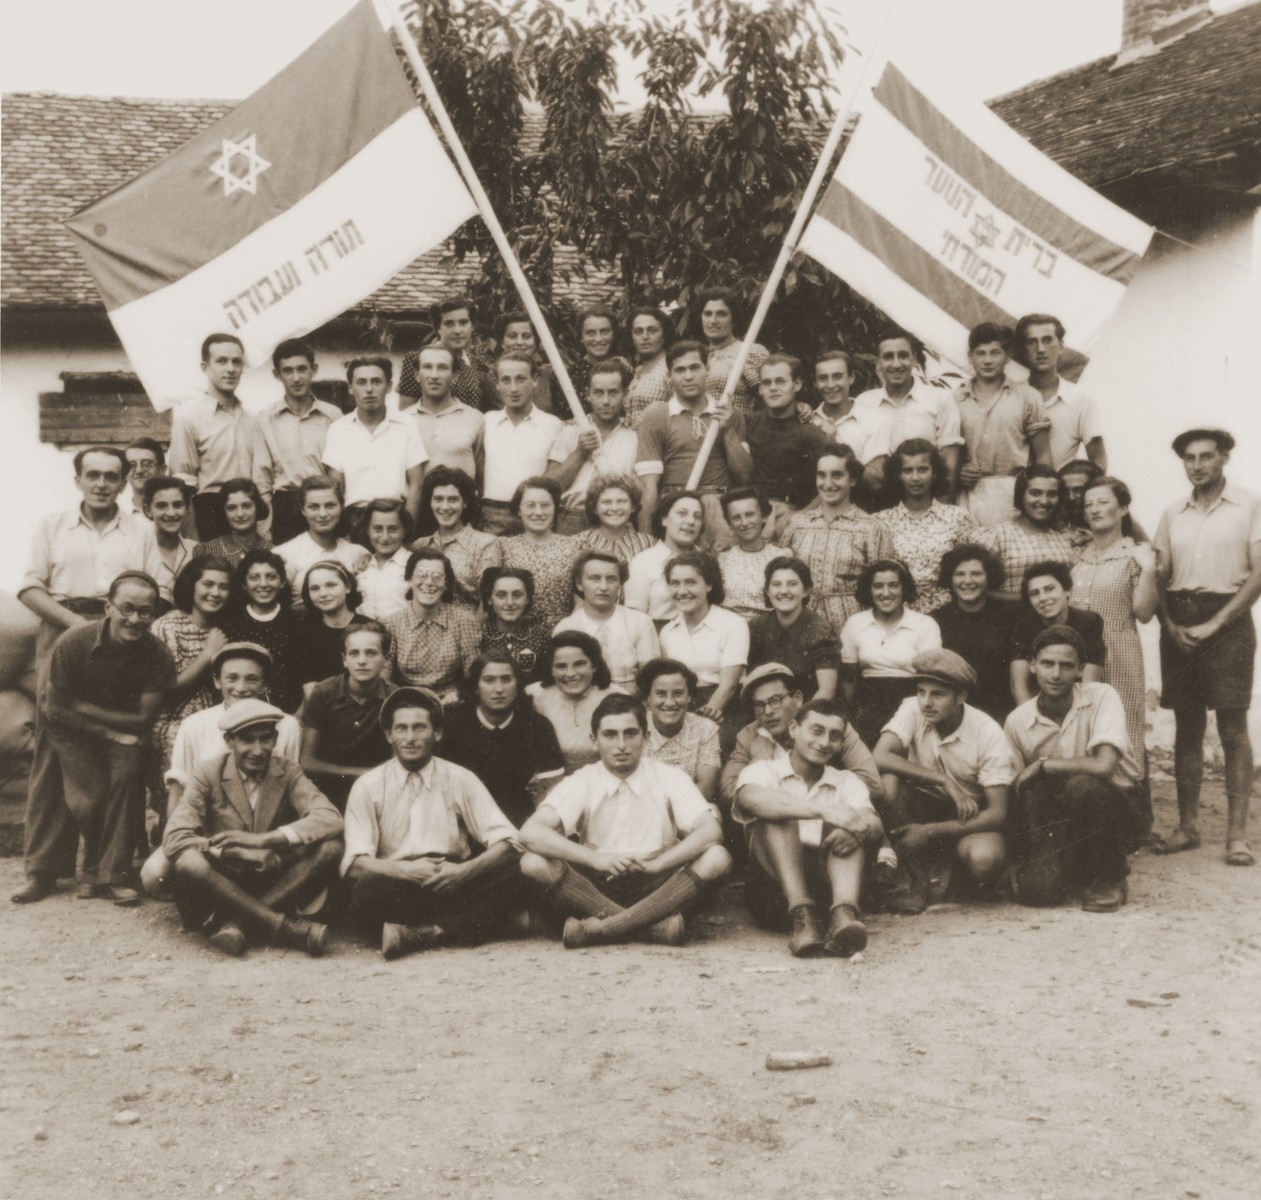 Members of the Brit Hanoar Hamizrahi from the Kladovo transport pose with the Zionist flag.